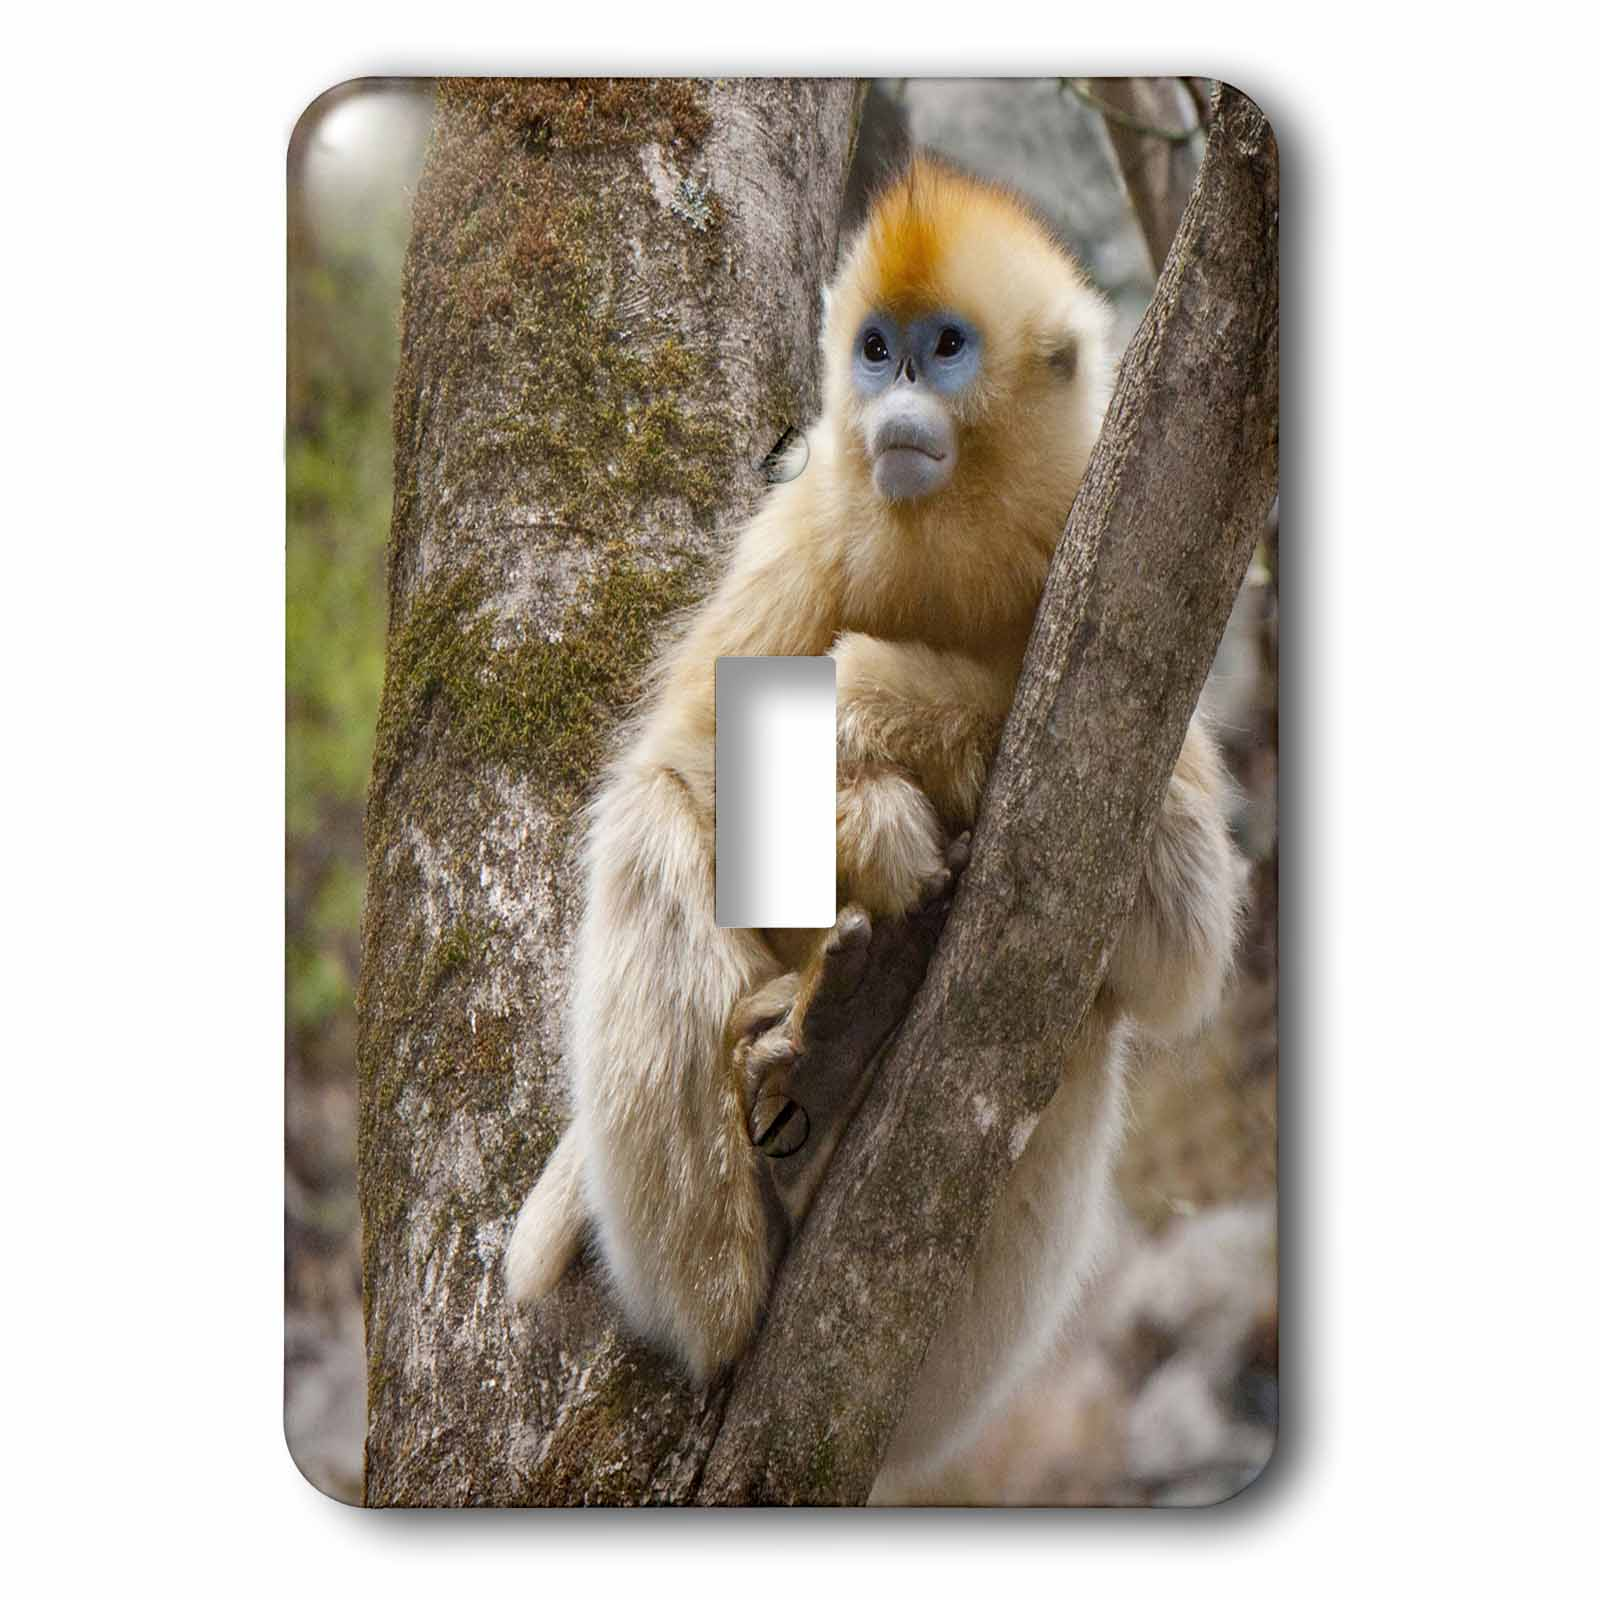 3dRose China, Qinling Mountains, female Golden monkey - AS07 AGA0019 - Alice Garland, 2 Plug Outlet Cover